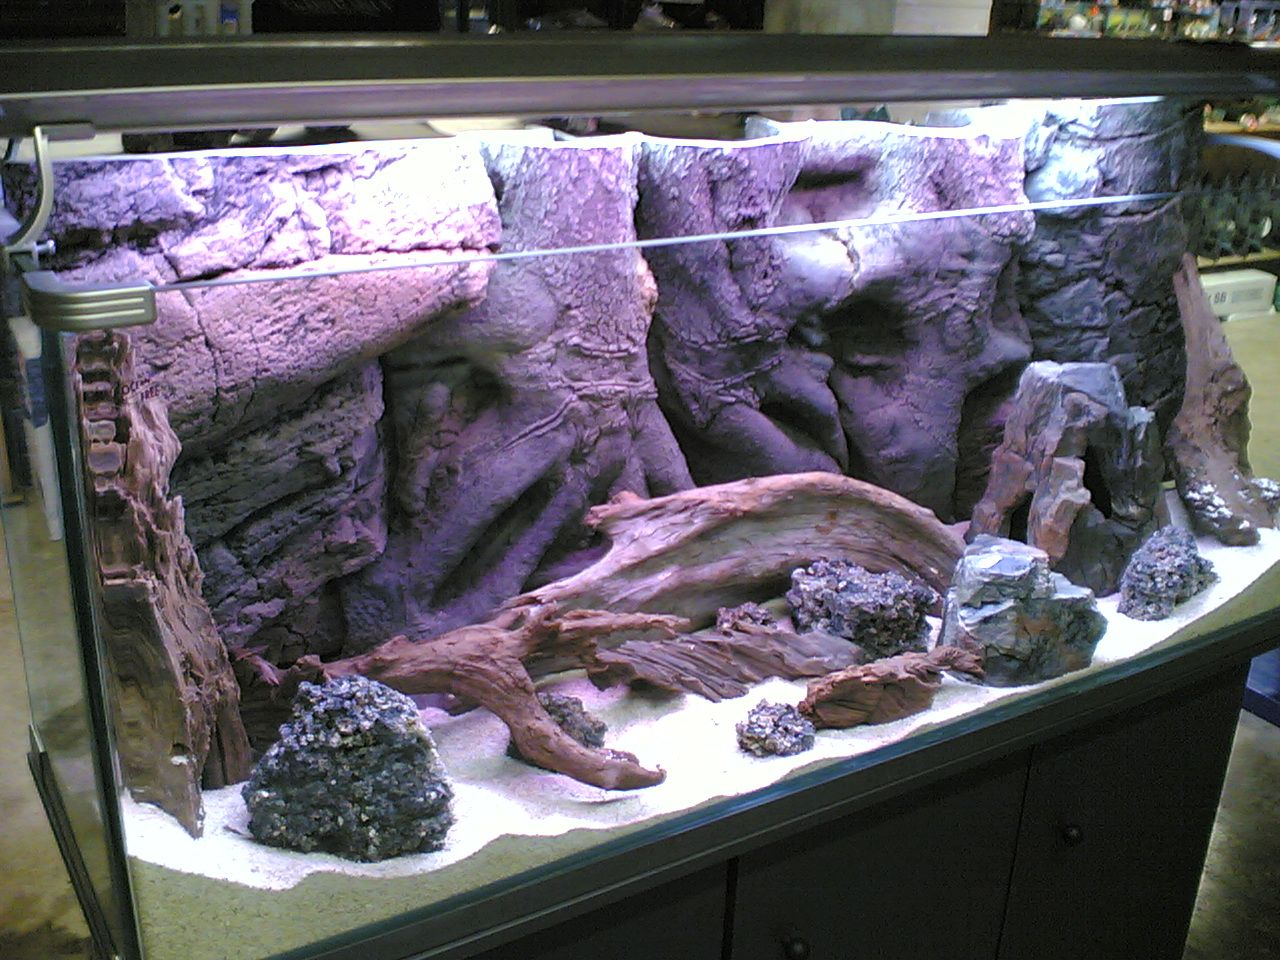 Fish for coldwater aquarium - Cold Water Aquarium Check Out The Rock Wall